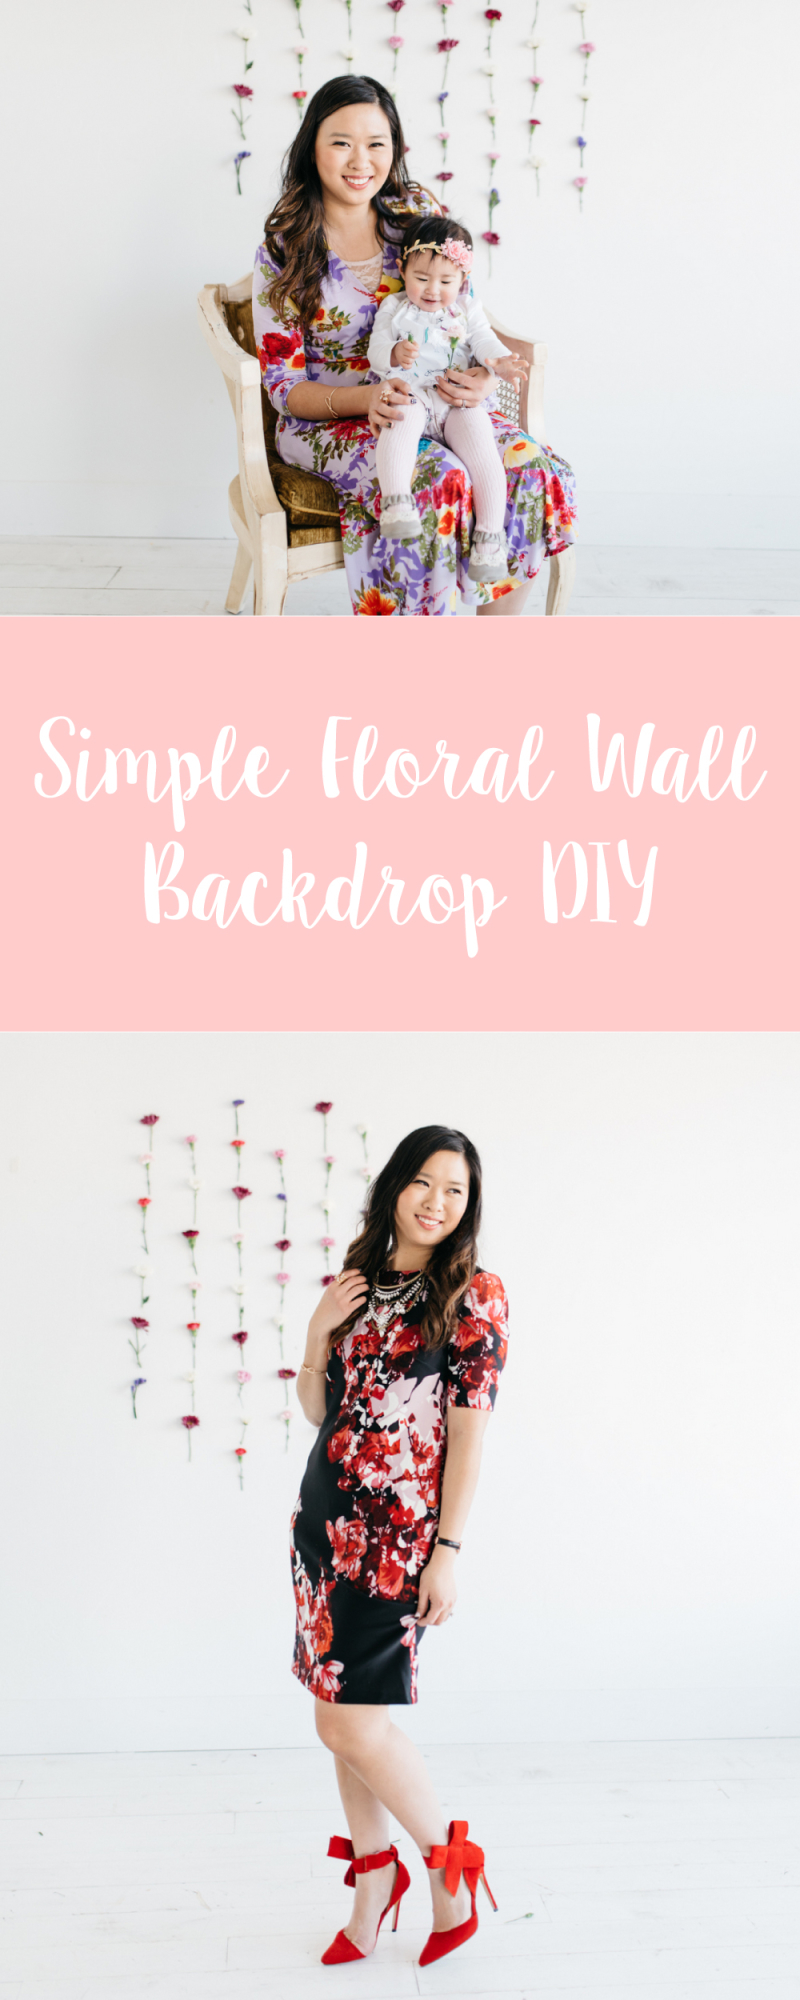 Simple Floral Wall Backdrop DIY